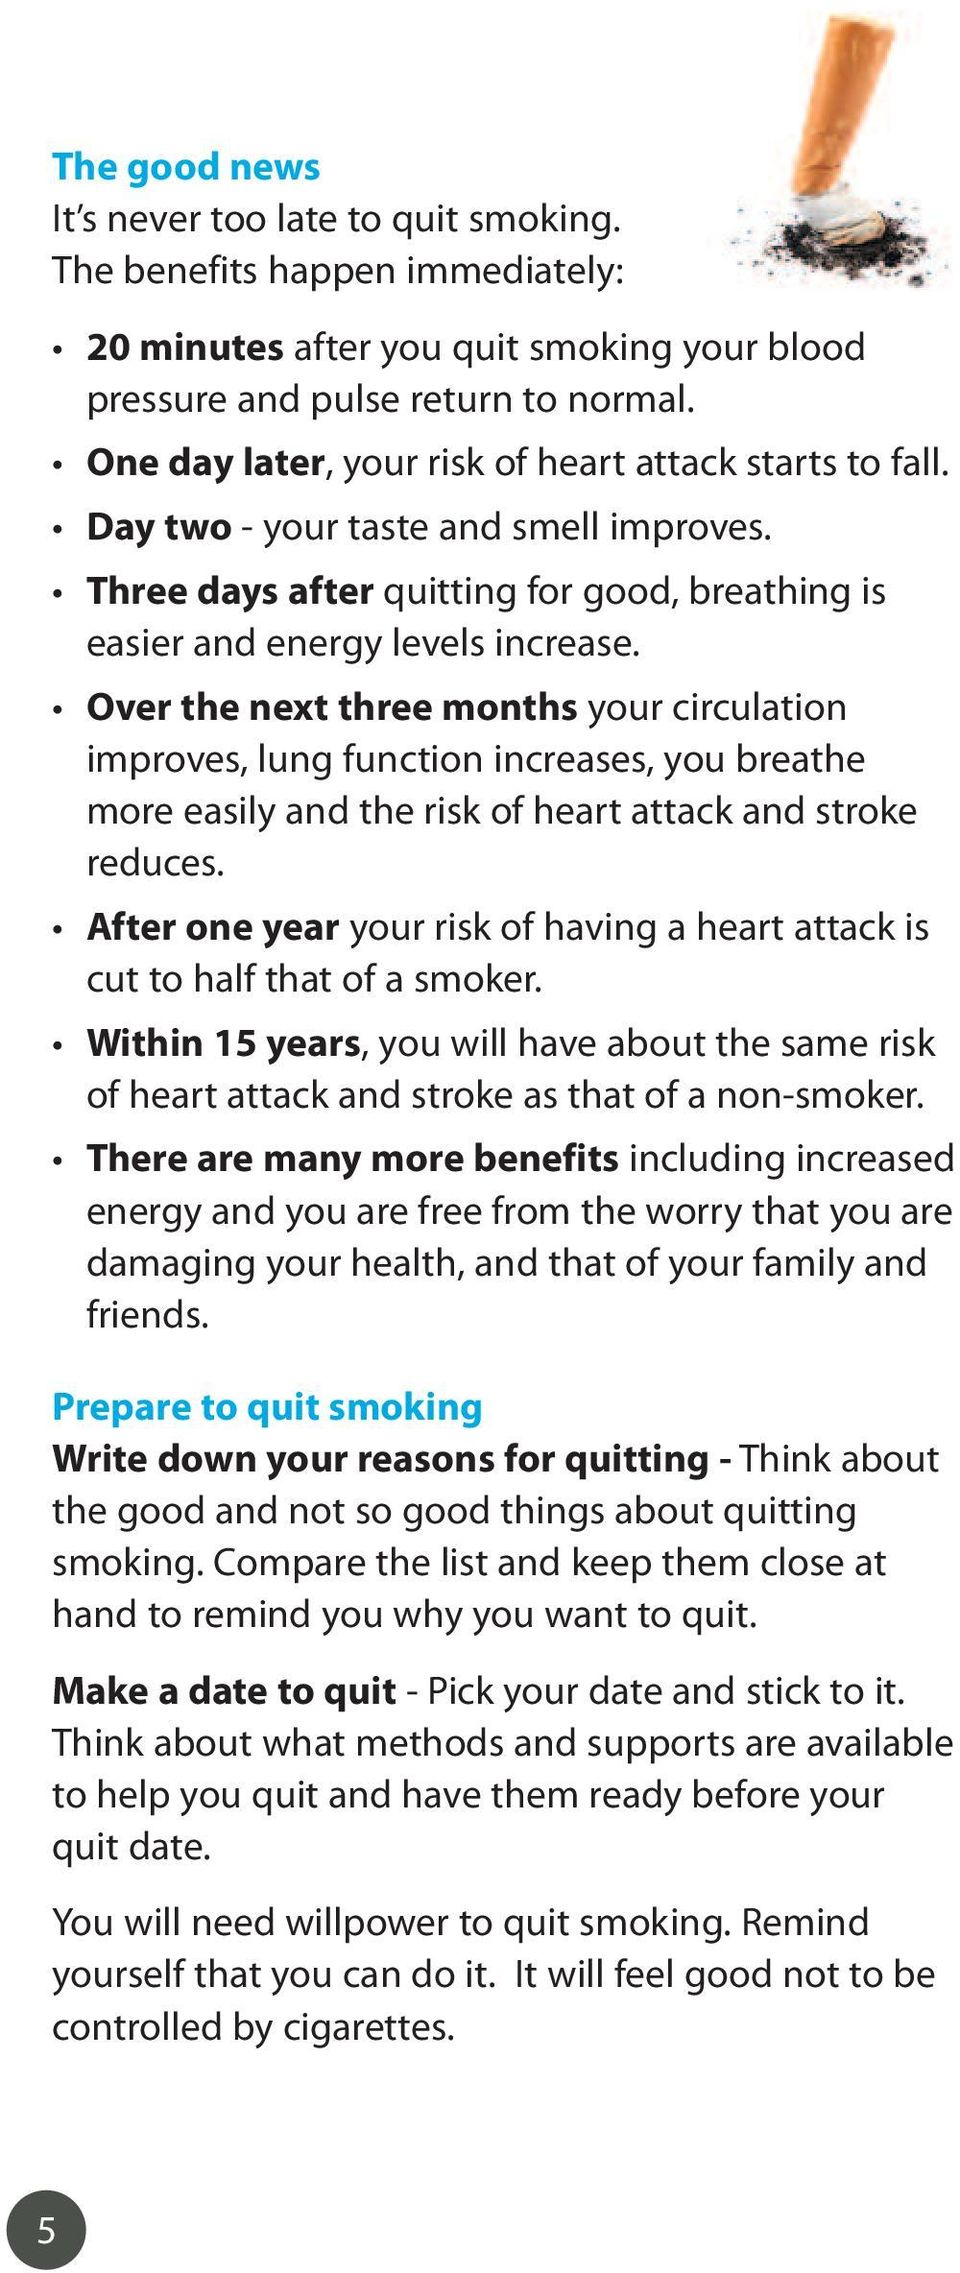 Over the next three months your circulation improves, lung function increases, you breathe more easily and the risk of heart attack and stroke reduces.